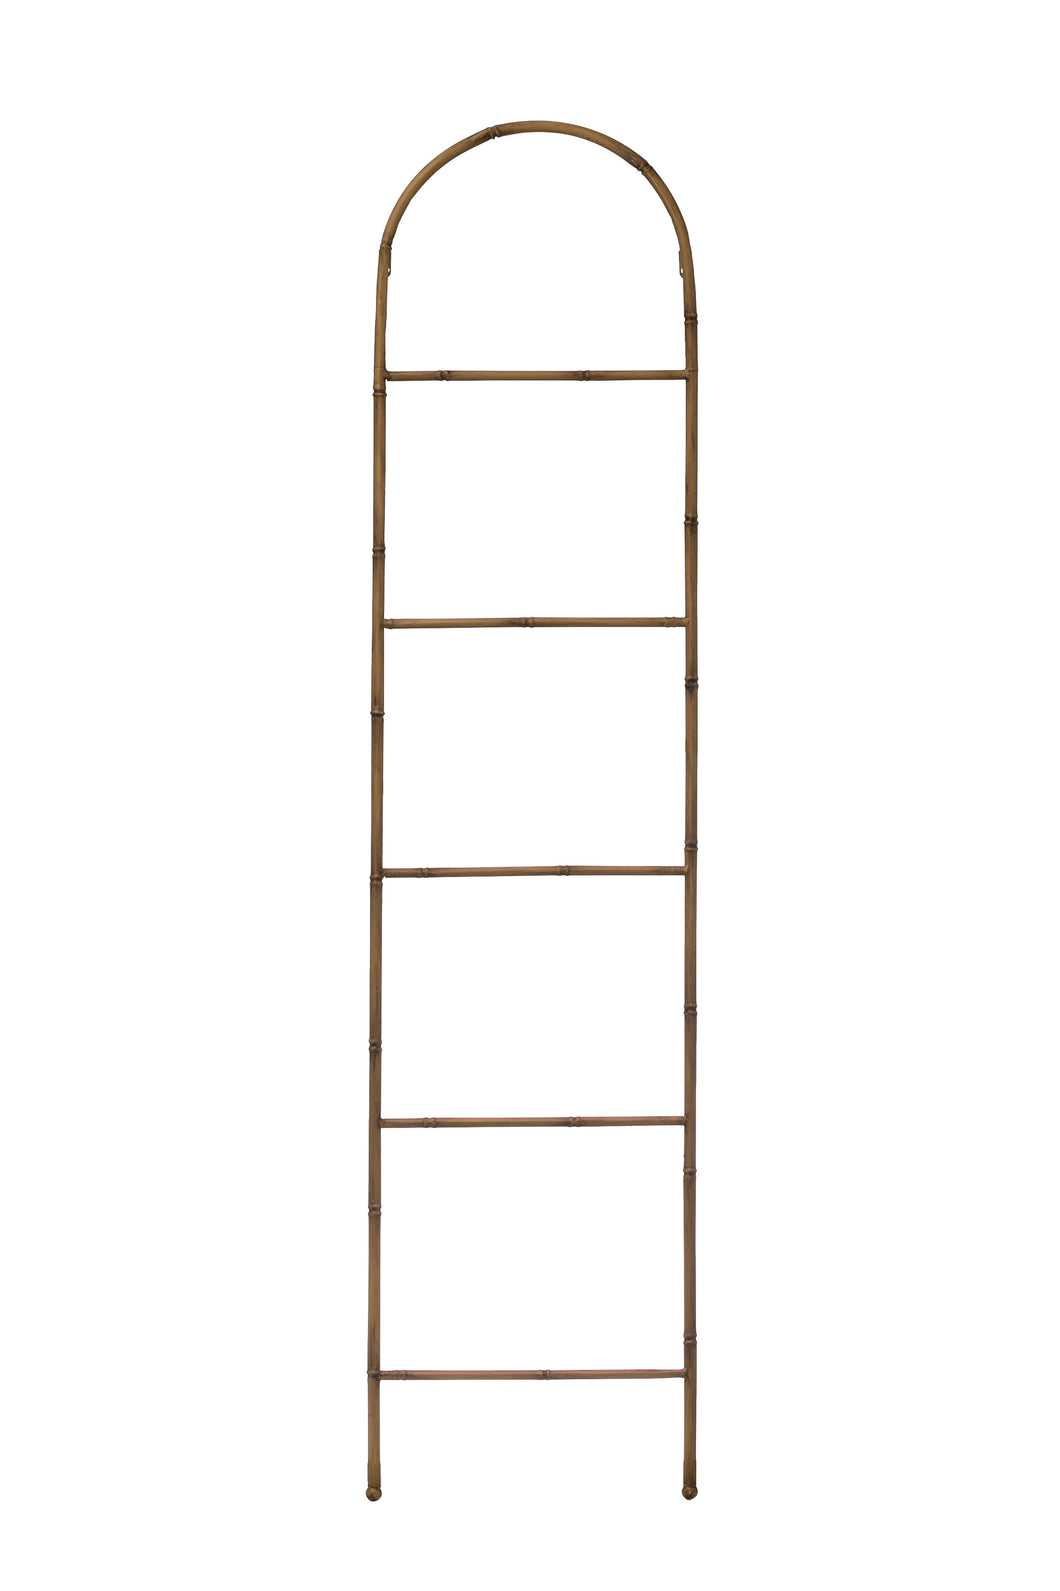 Imogen Metal Ladder with Arched Top + Bamboo Finish